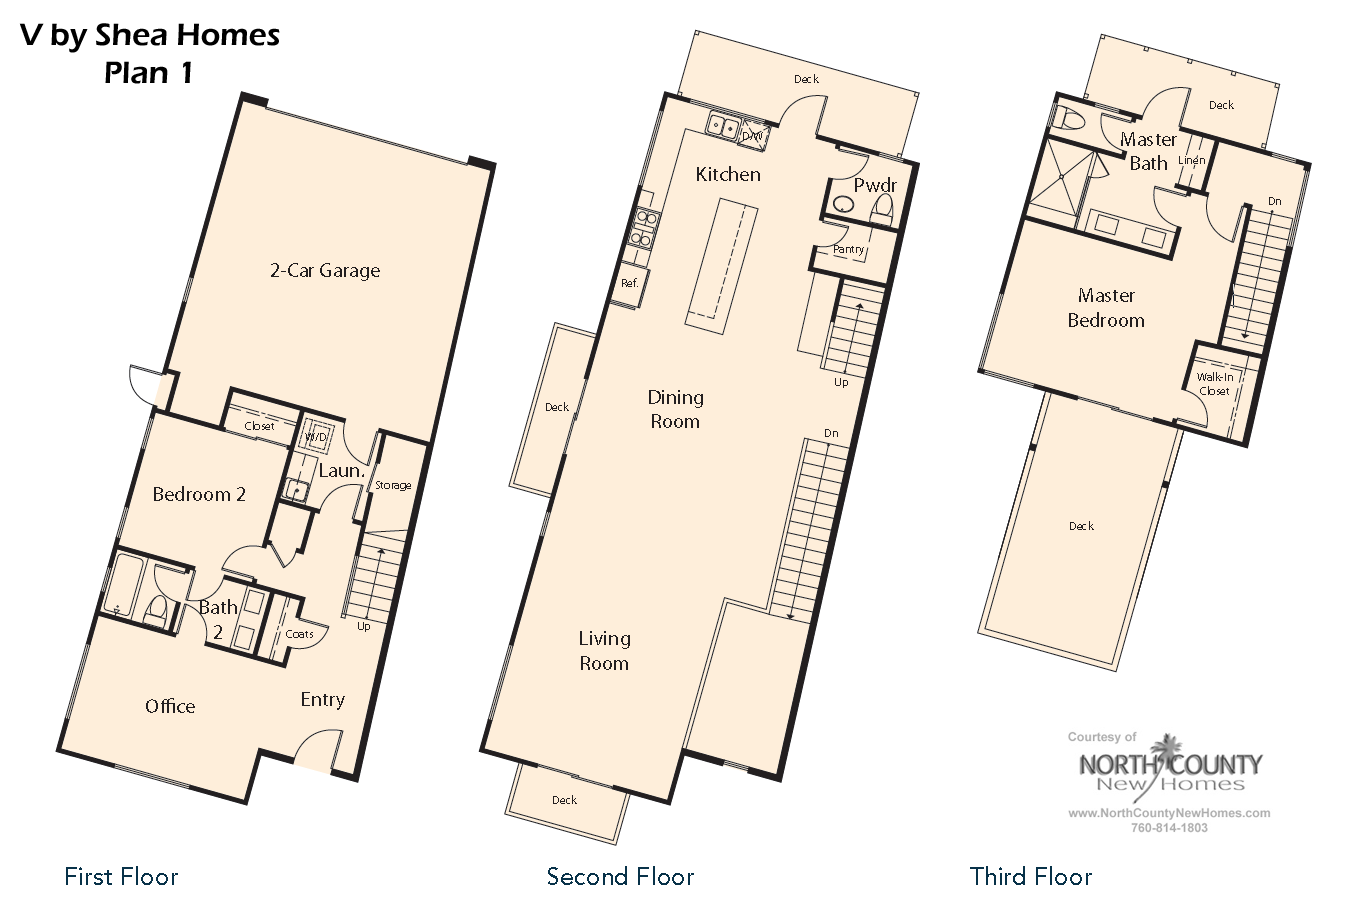 V by shea homes in leucadia floor plan 1 north county for New homes floor plans